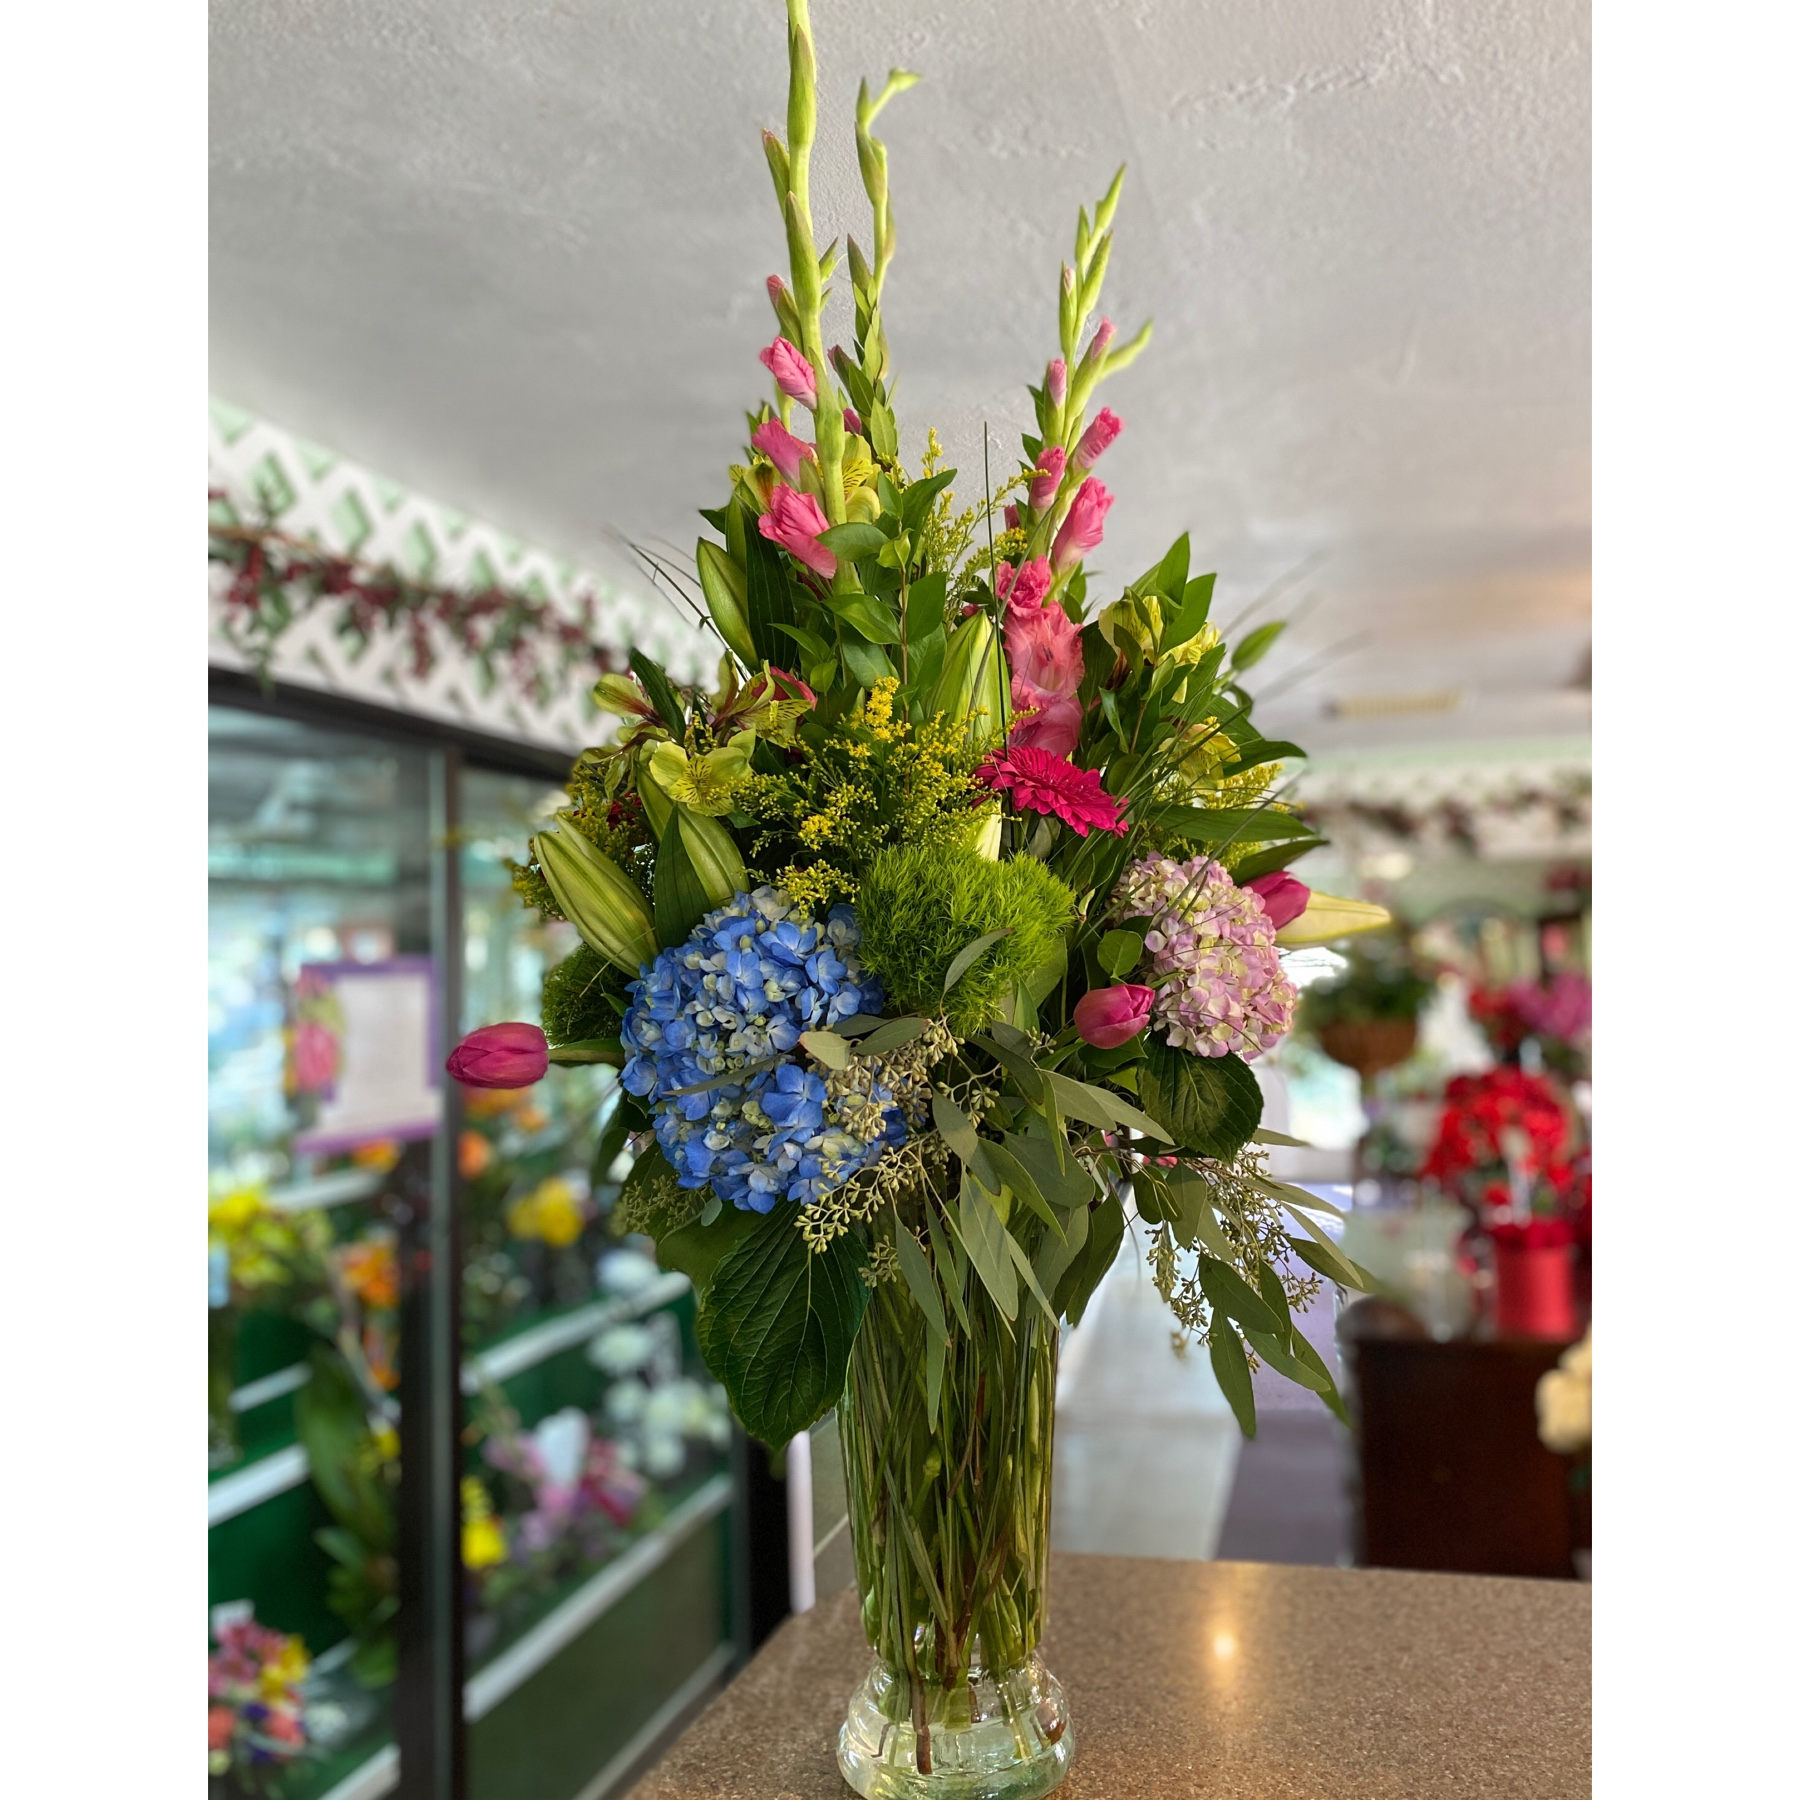 DiBella Flowers & Gifts Las Vegas - Gladiolas, assorted shades of hydrangea, Gerbera daisies, lilies and more and tall trumpet vase perfect for any occasion.